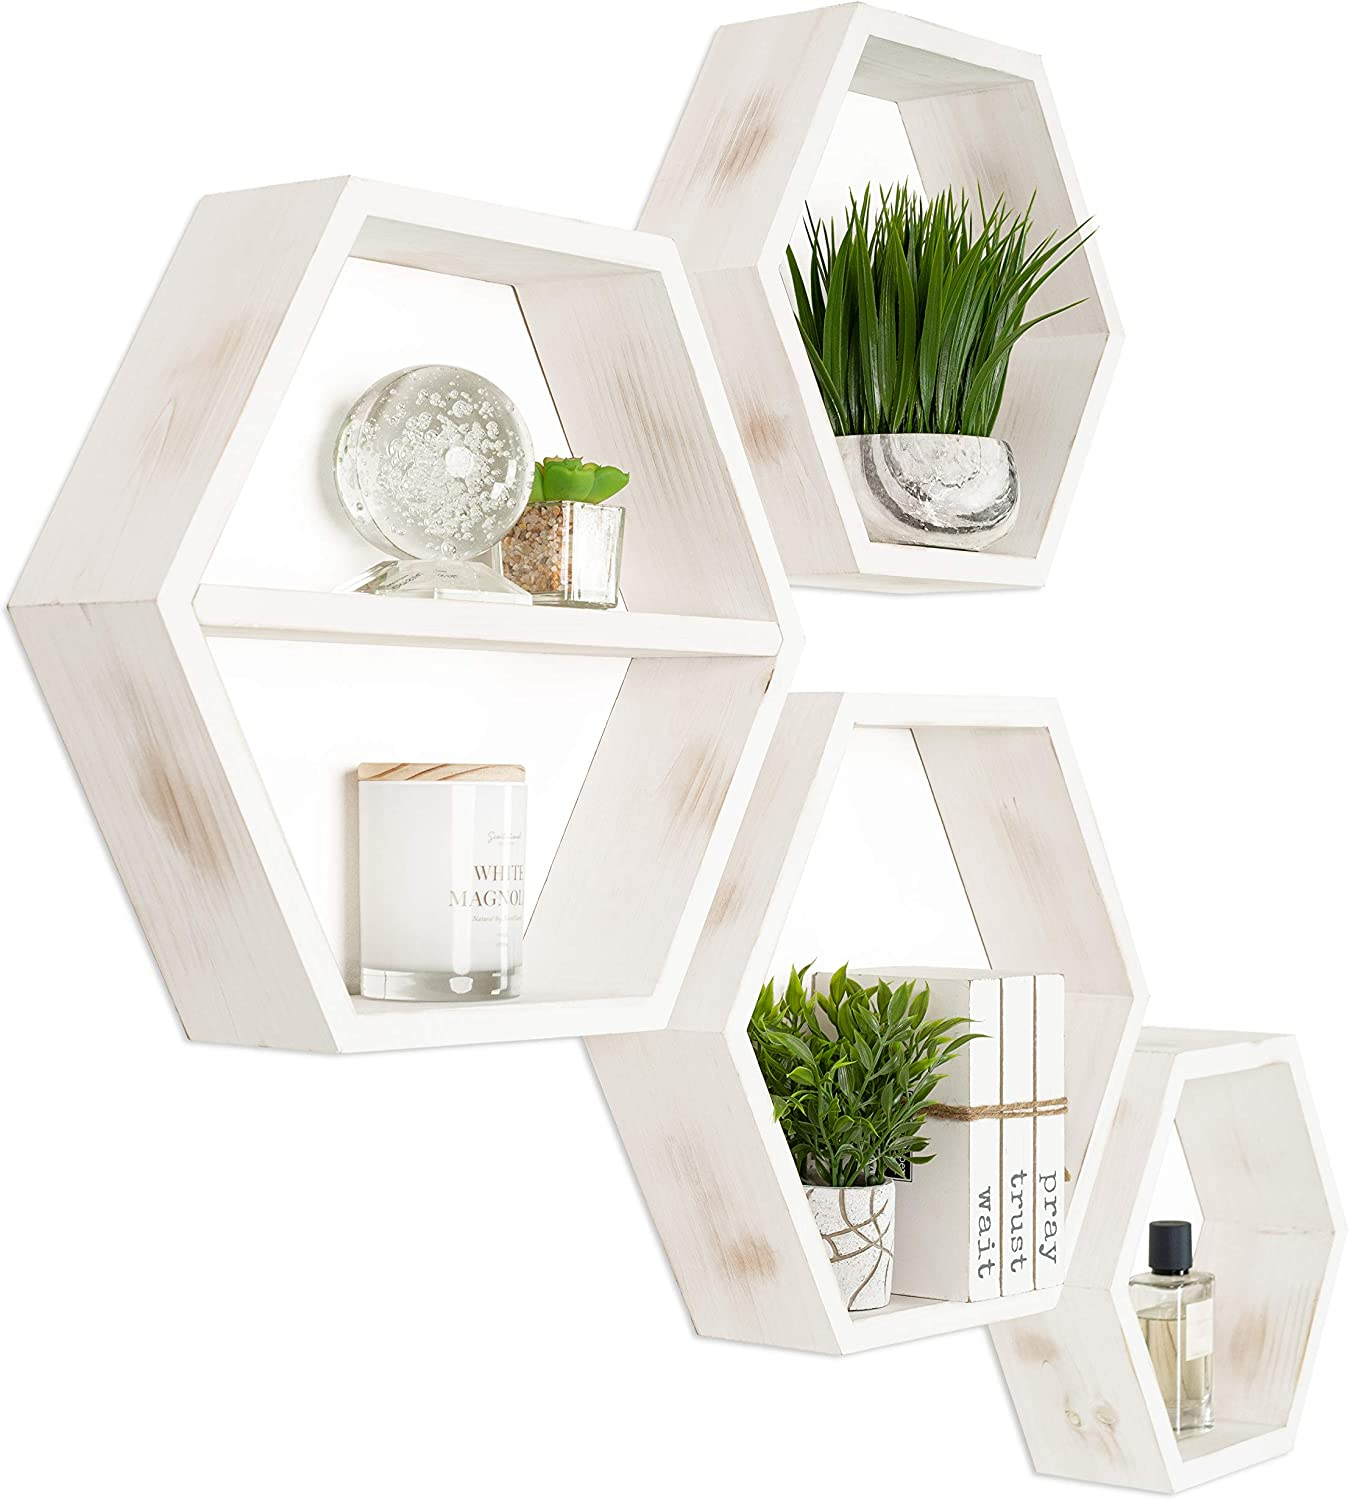 Hexagon Shelves - Large Set of 4 - Rustic White Honeycomb Shelves - Hexagonal Floating Shelves for Wall - Wooden Octagon Hanging Shelf - Farmhouse Boho Nursery Home Decor - Modern Solid Wood